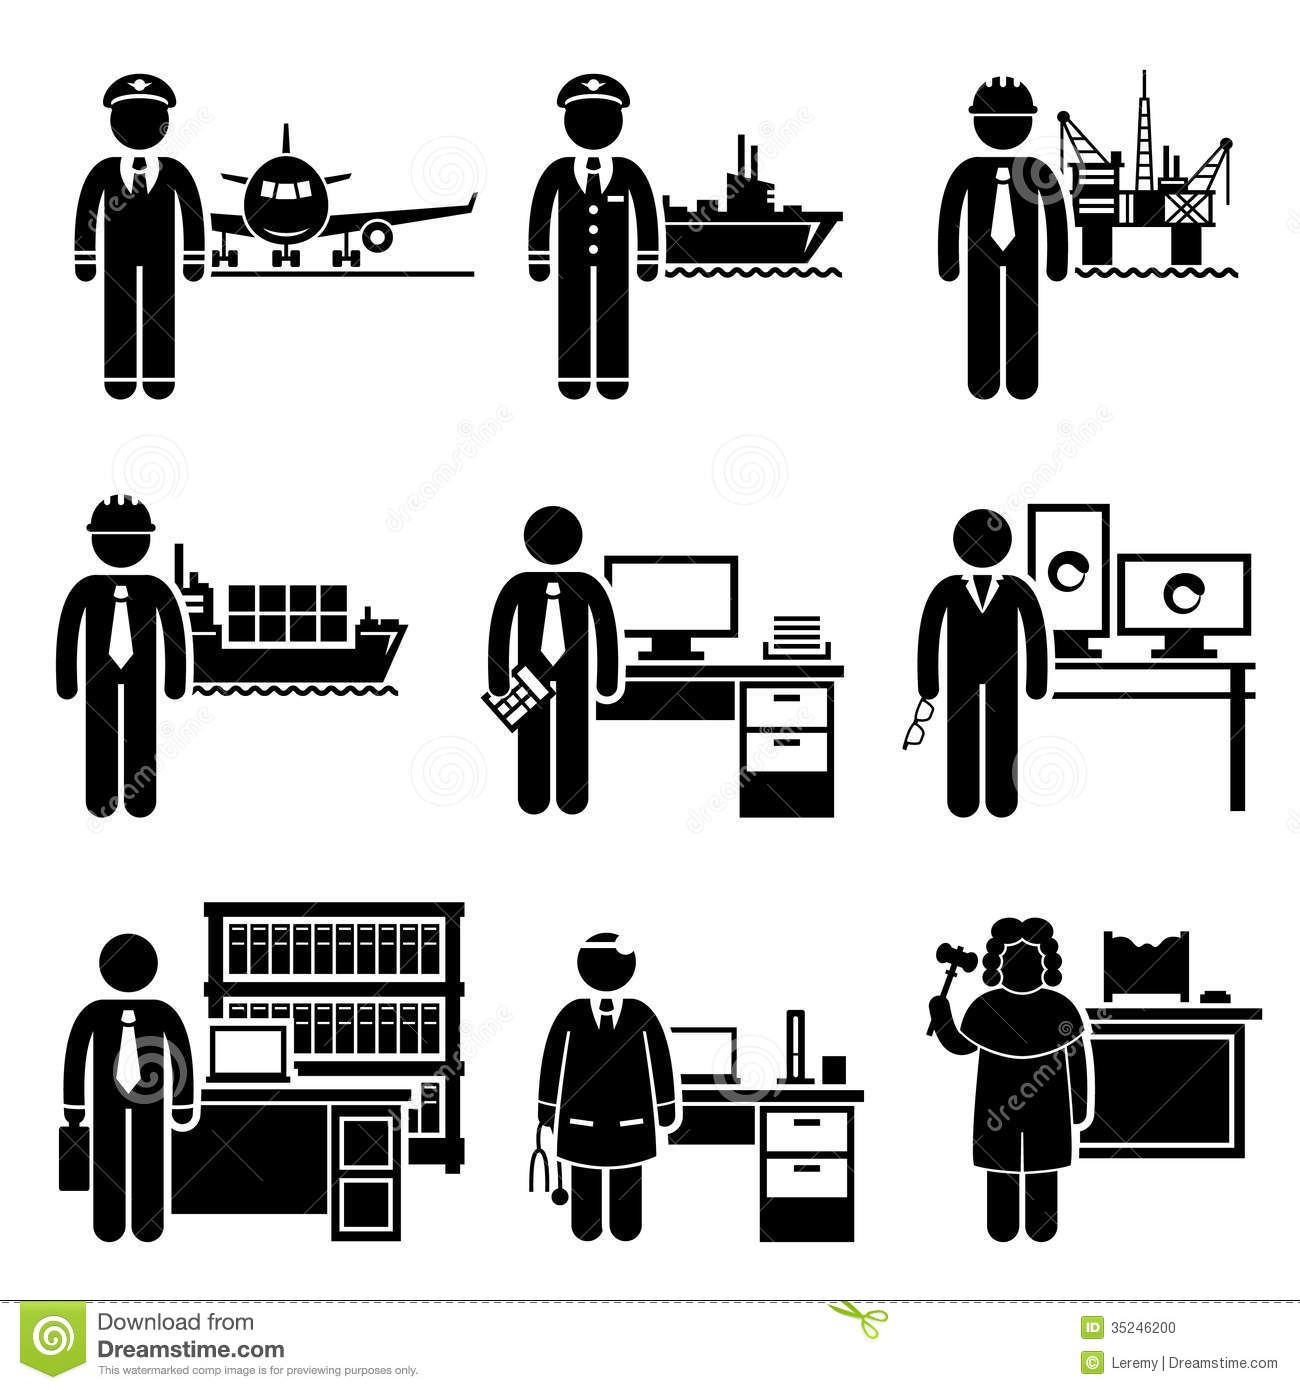 Careers: High Income Professional Jobs Occupations Careers Stock